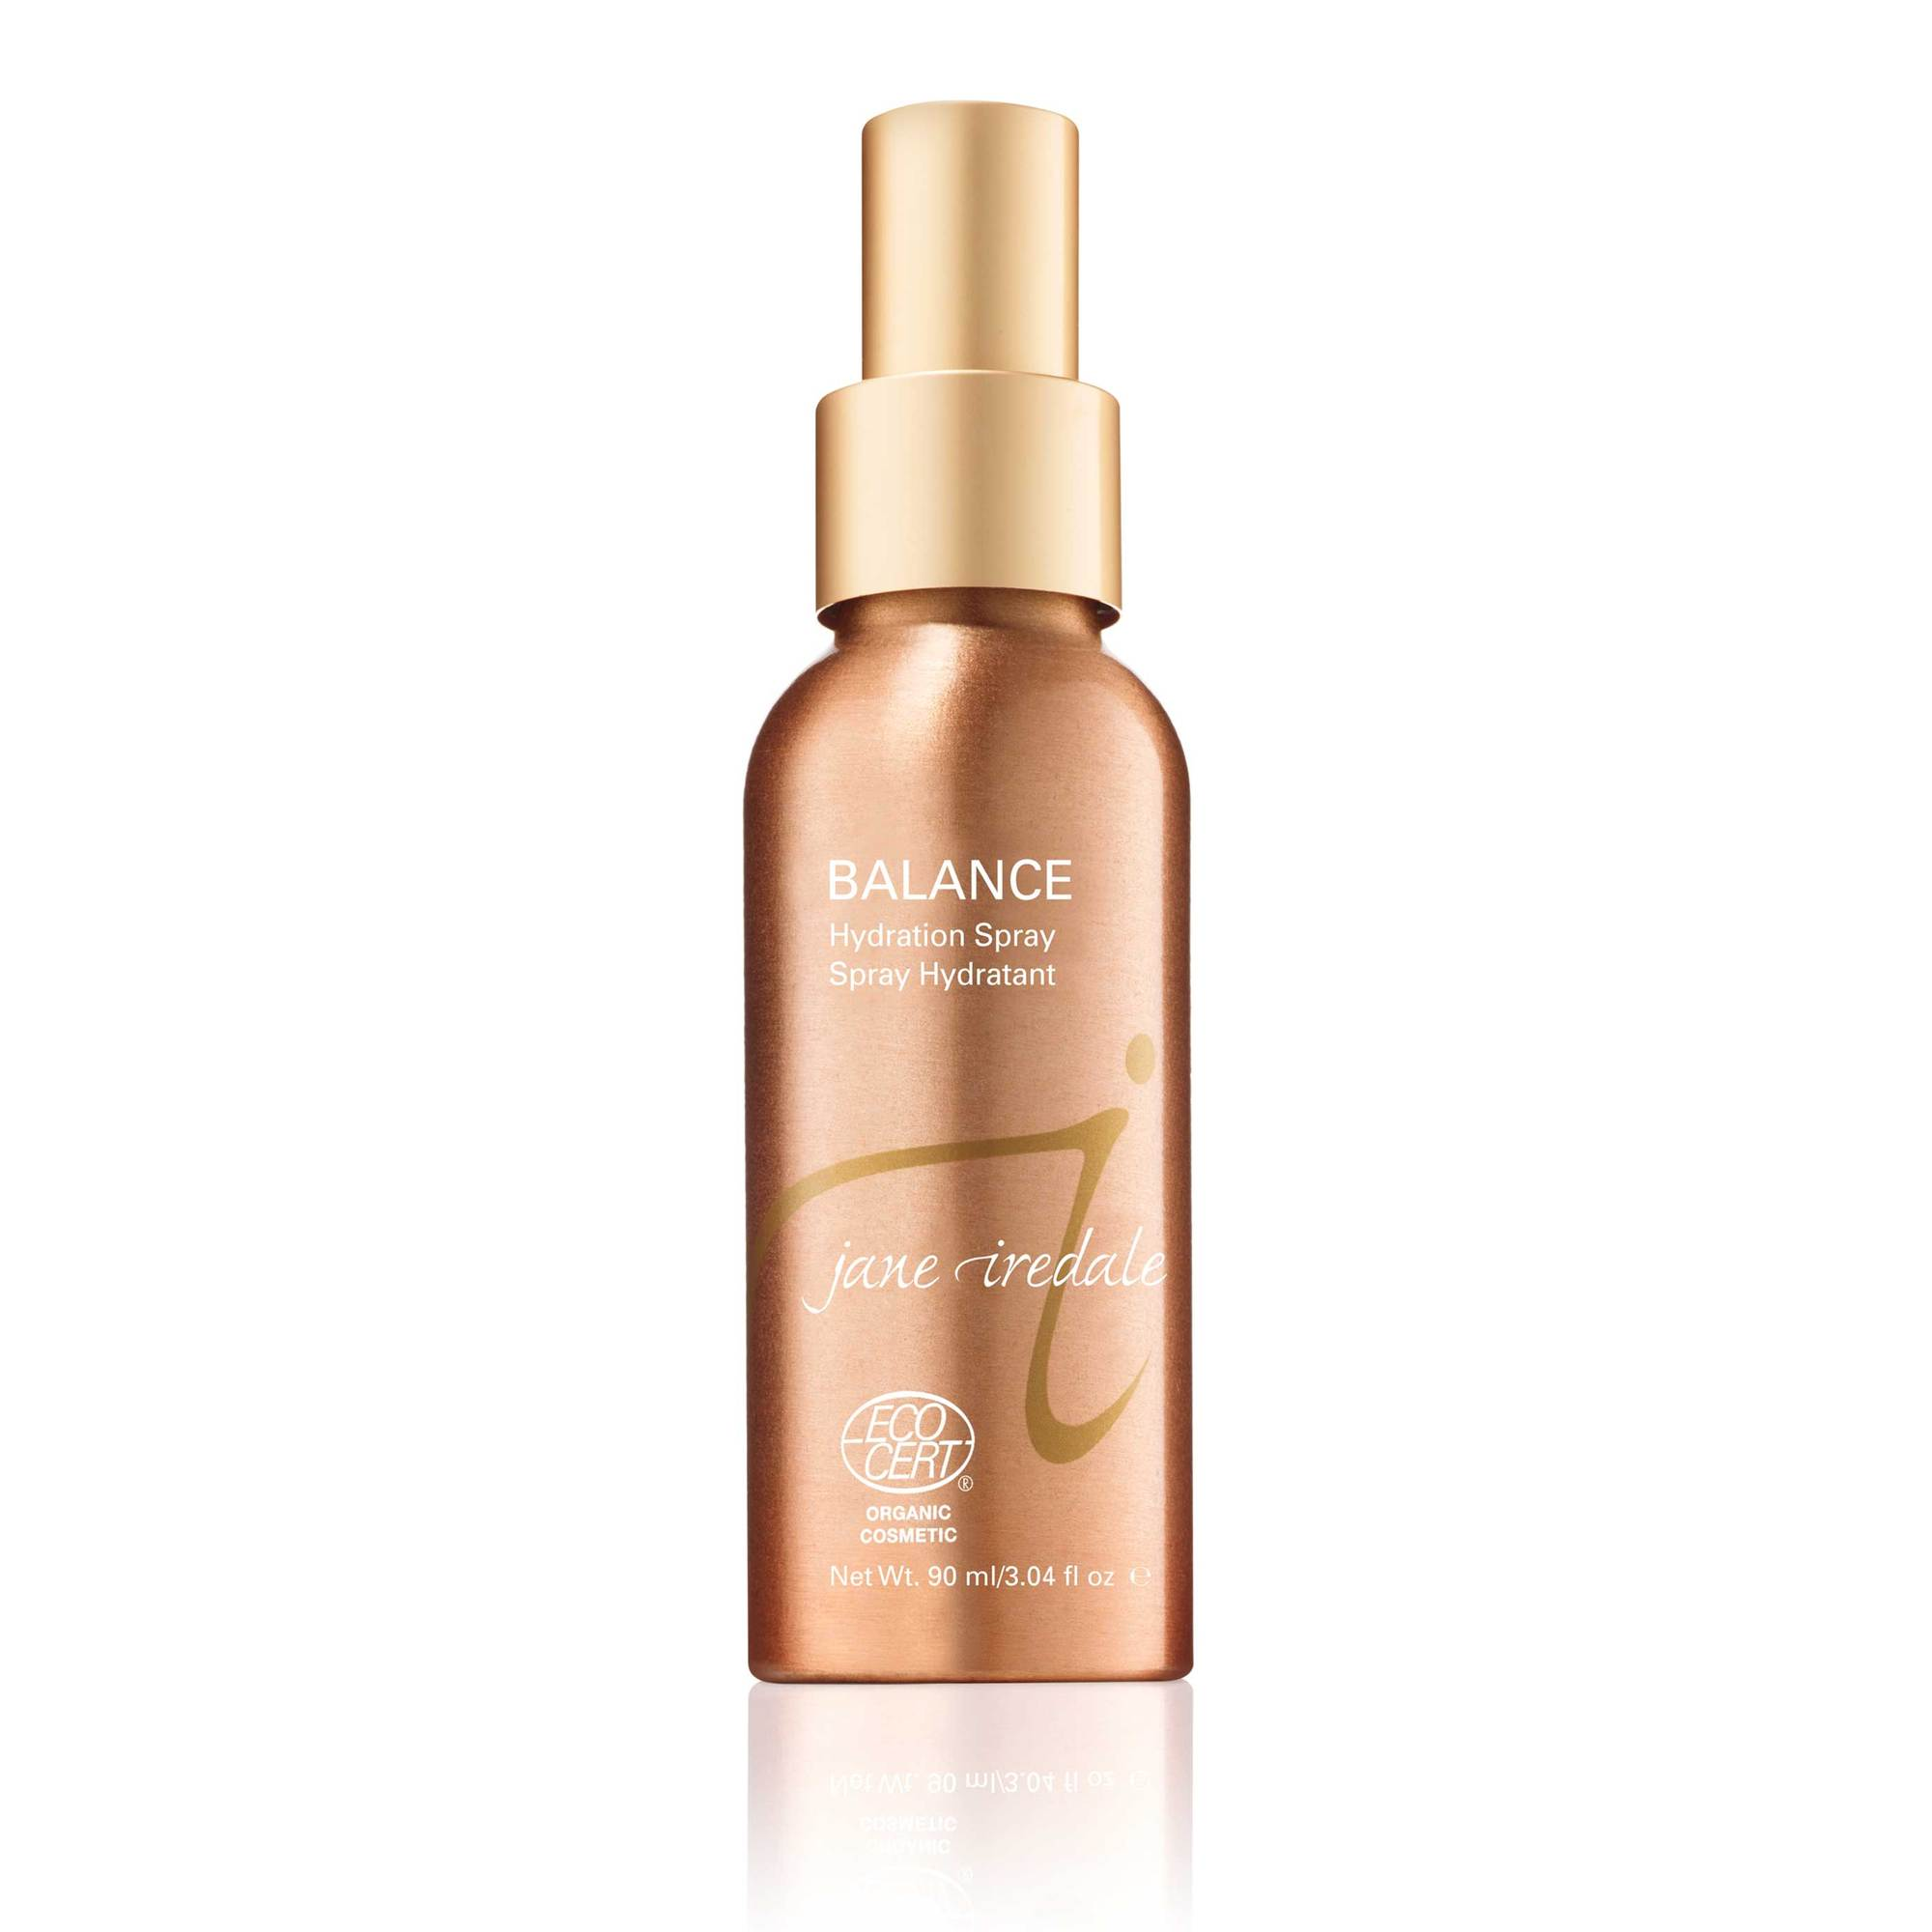 Balance Hydration Spray